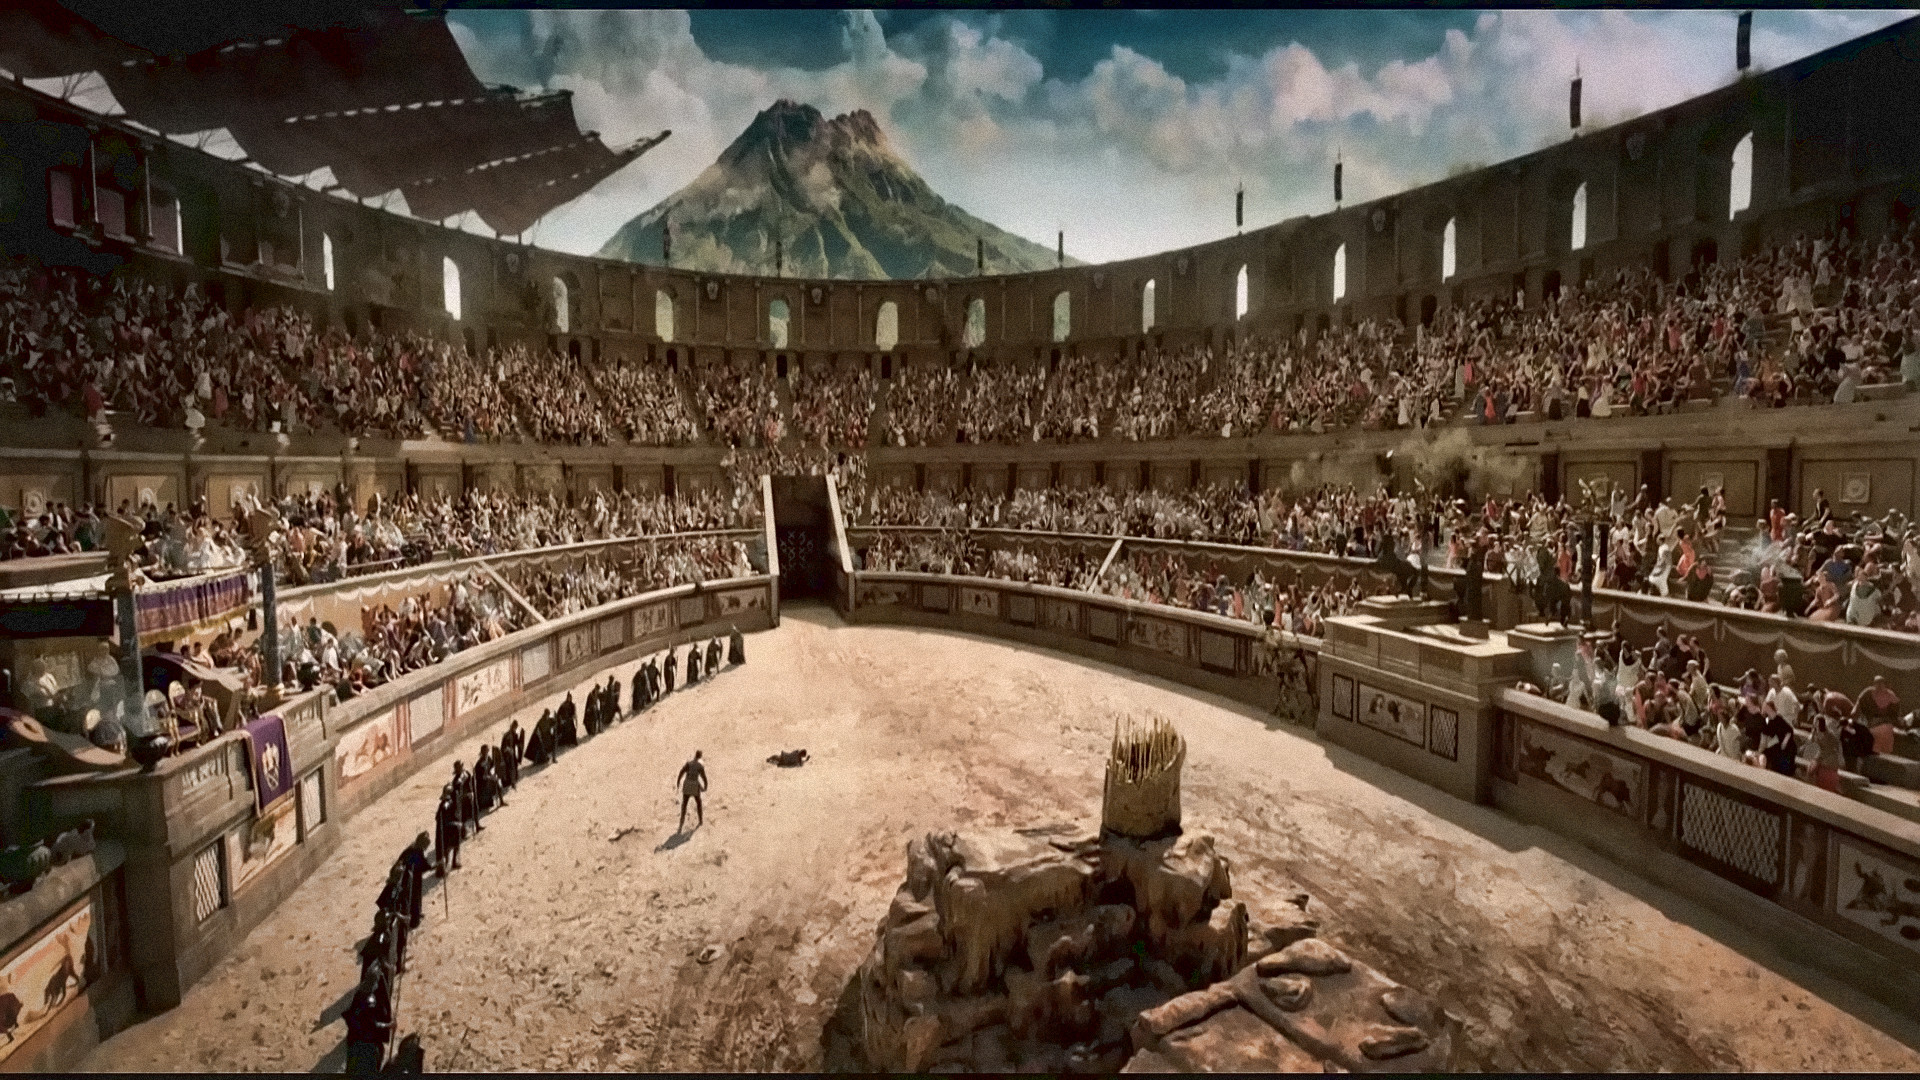 Res: 1920x1080, Pompeii Movie images The Colosseum HD wallpaper and background photos